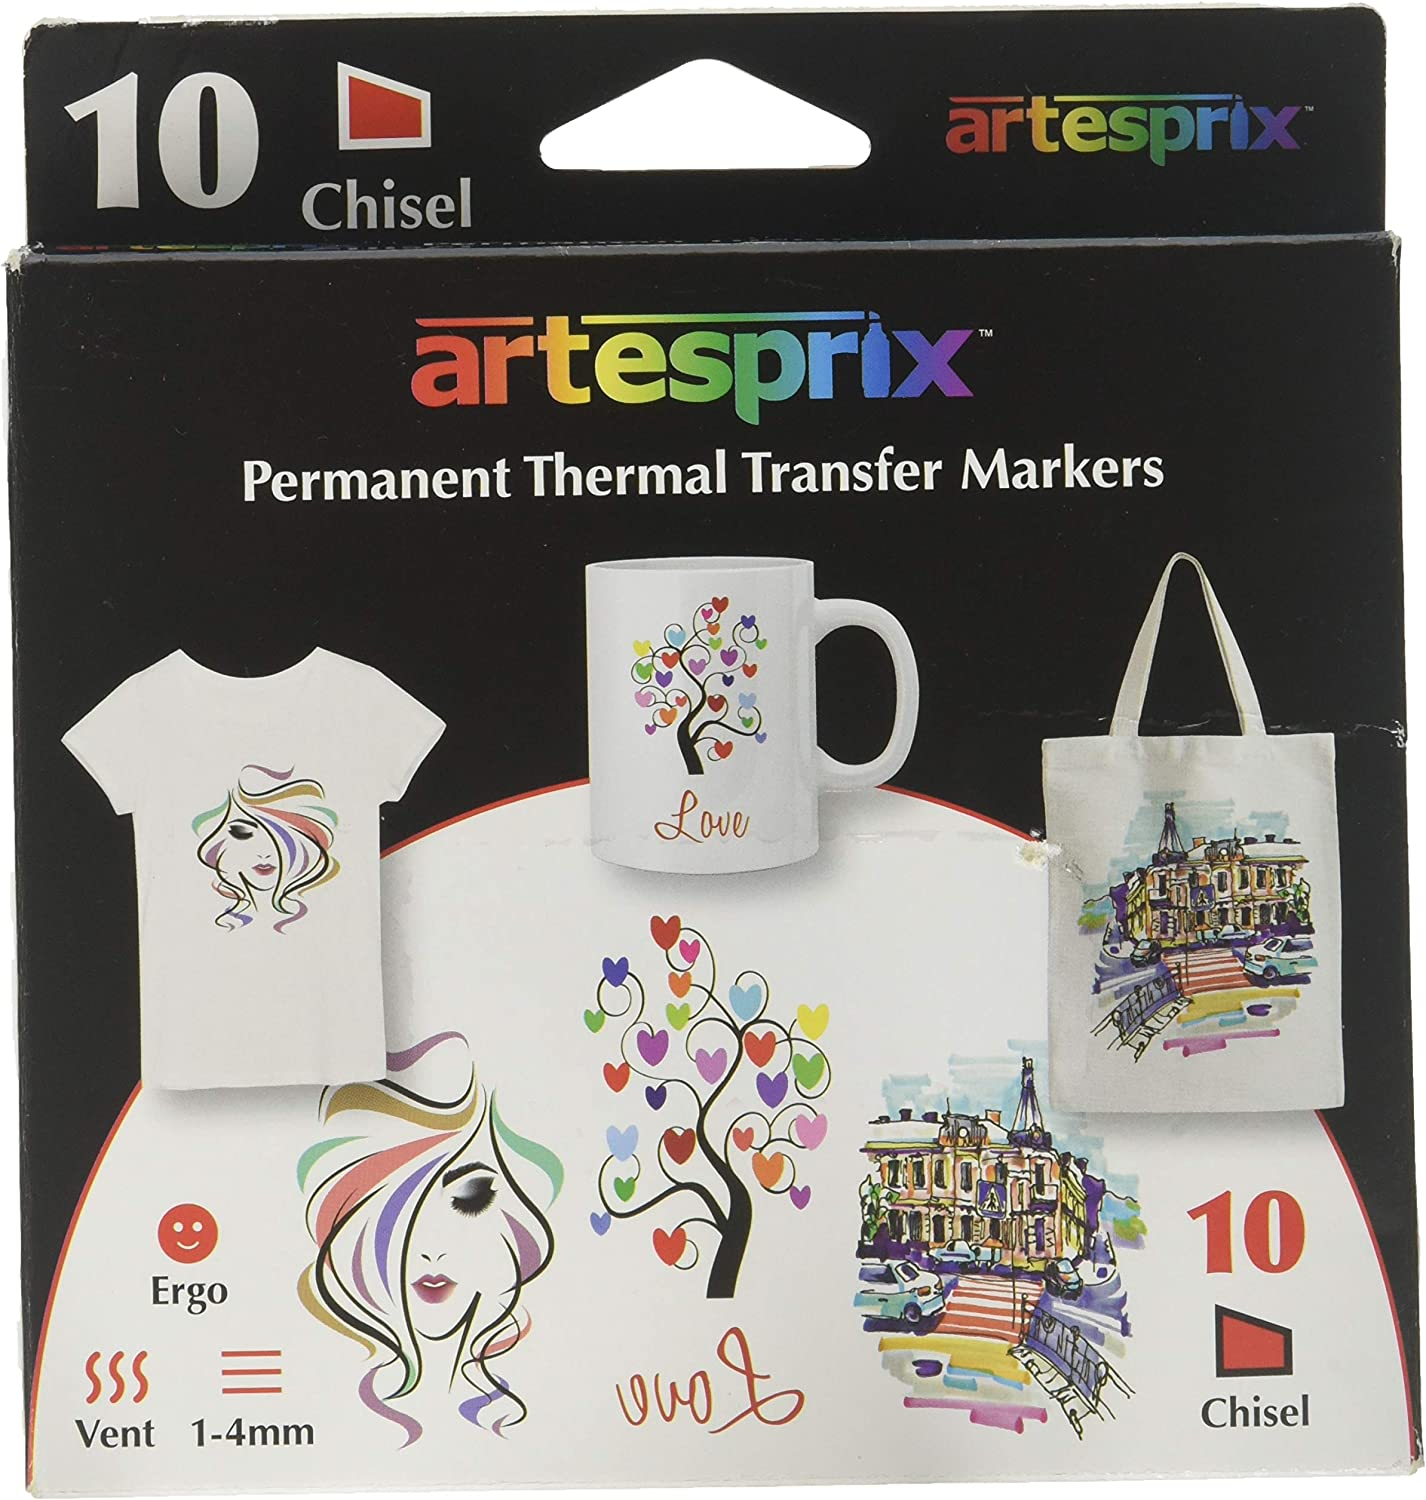 Artesprix ARX00110 Permanent Thermal Transfer Markers